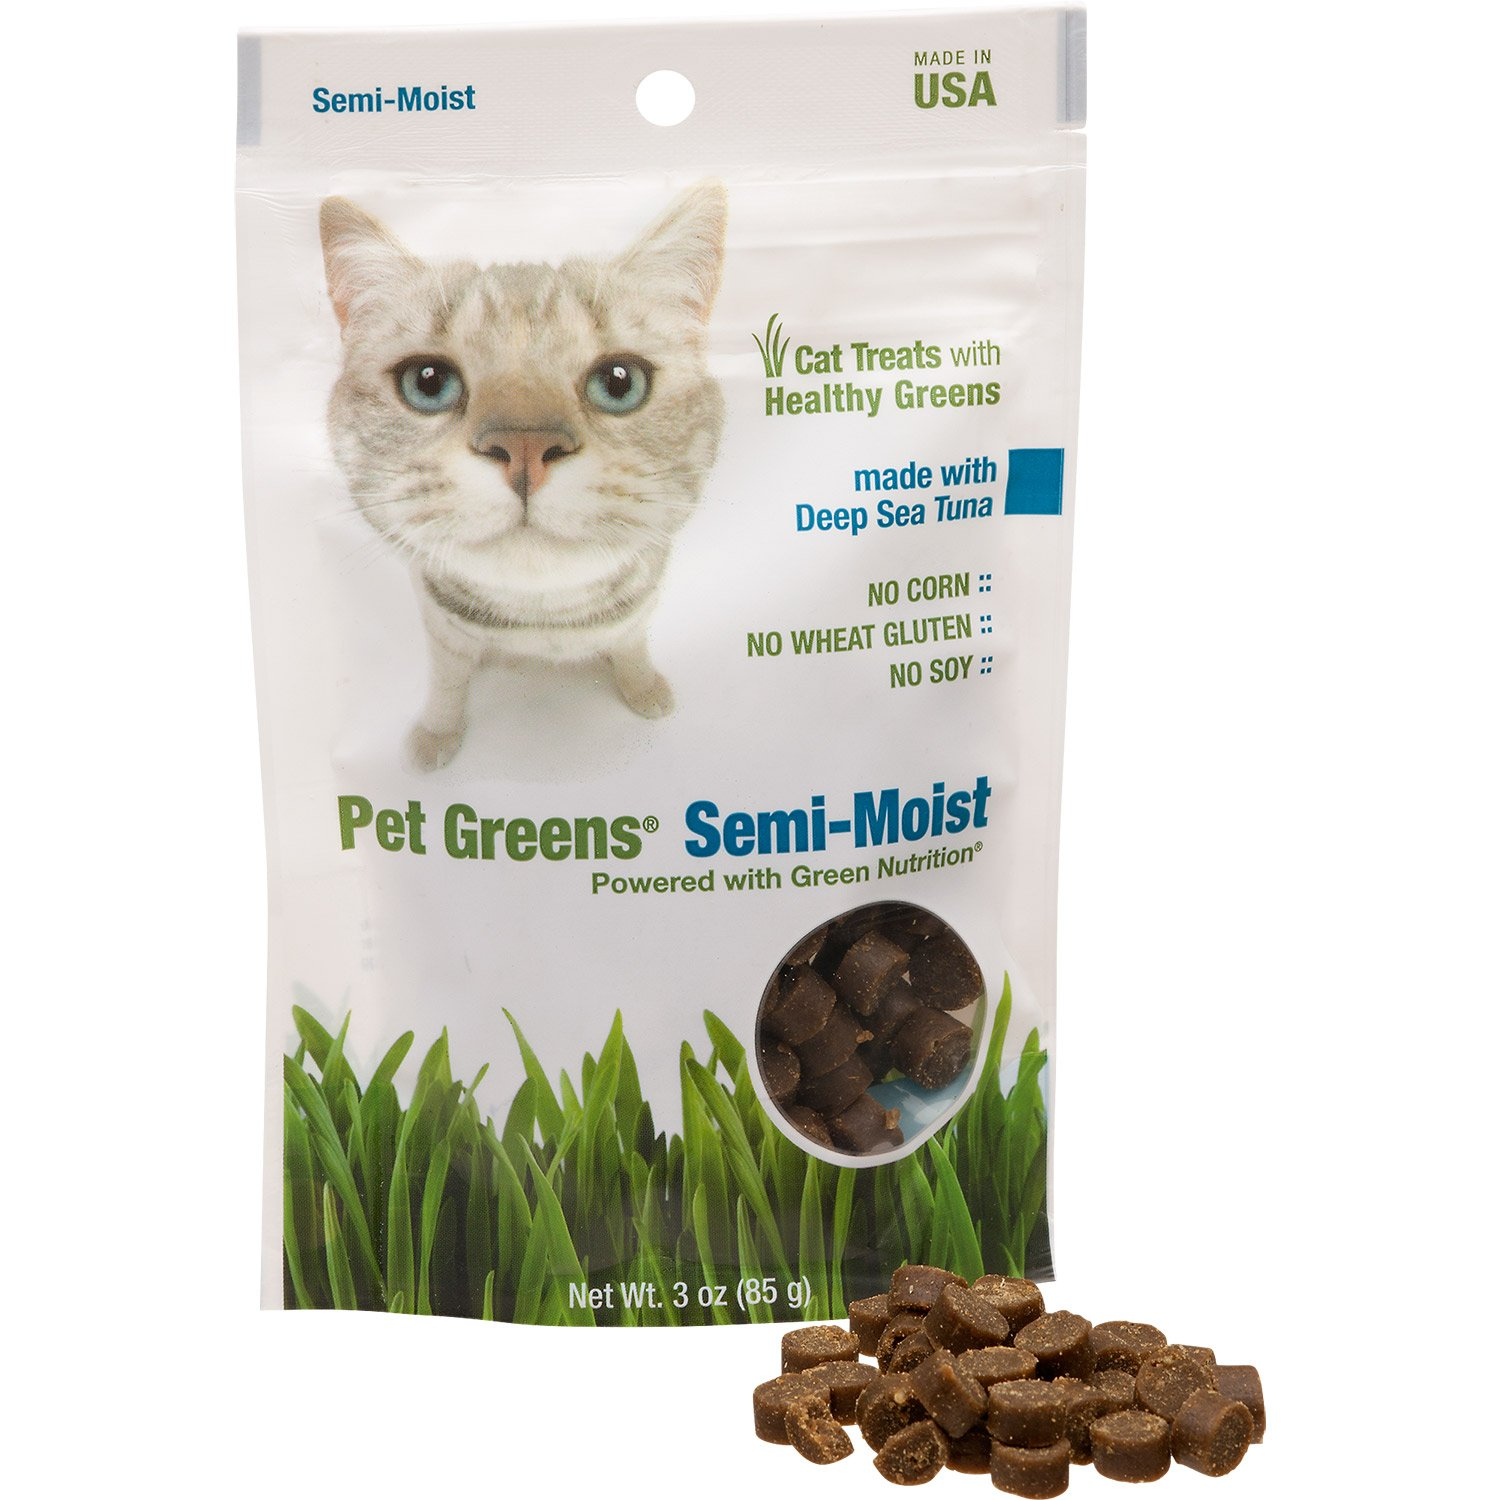 Pet Greens Deep Sea Tuna Semi-Moist Cat Treats